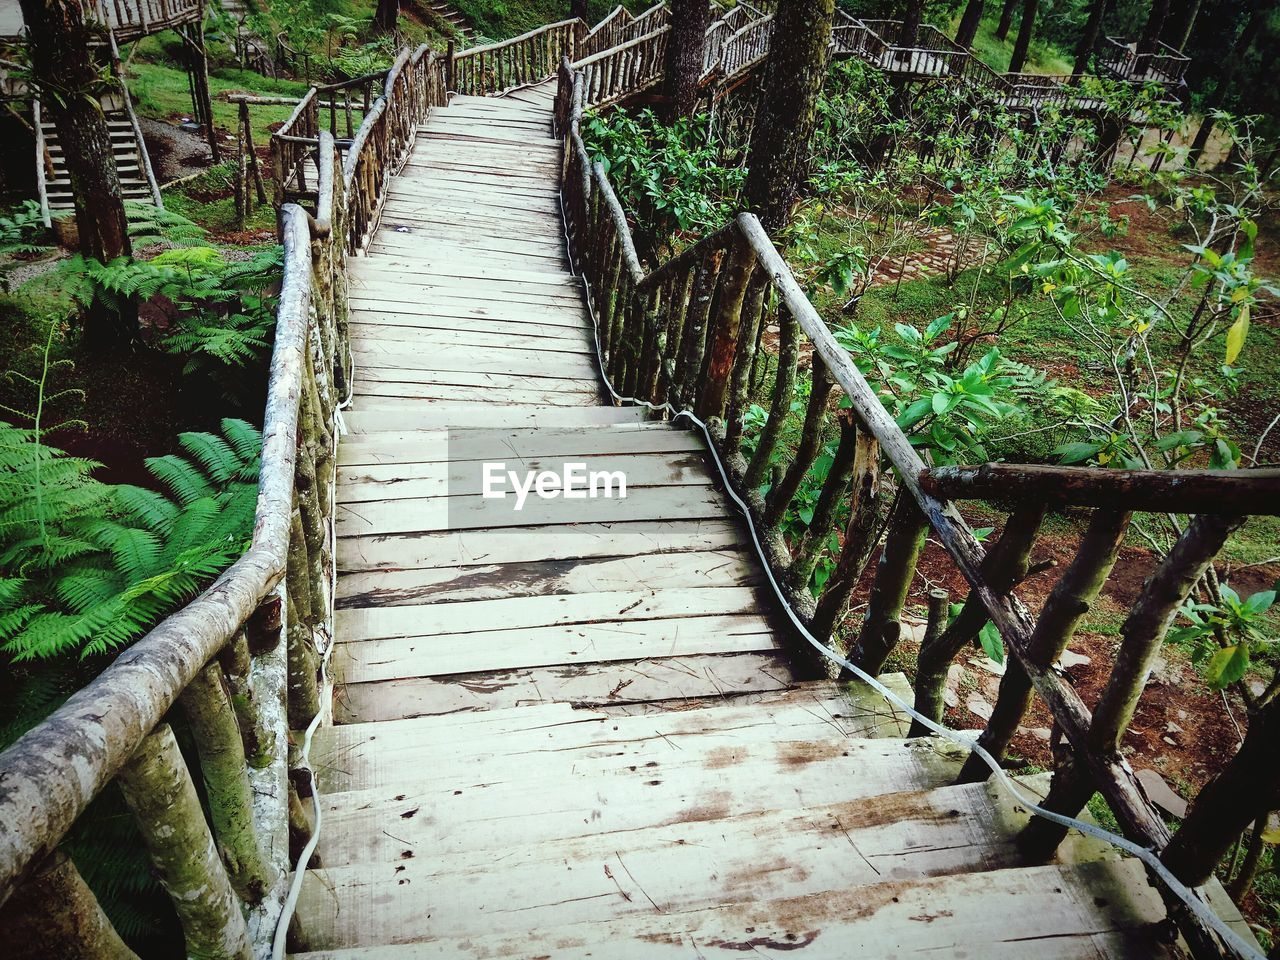 plant, the way forward, direction, railing, wood - material, no people, footpath, nature, tree, tranquility, land, day, forest, architecture, outdoors, beauty in nature, green color, bridge, growth, staircase, wood, footbridge, diminishing perspective, wood paneling, long